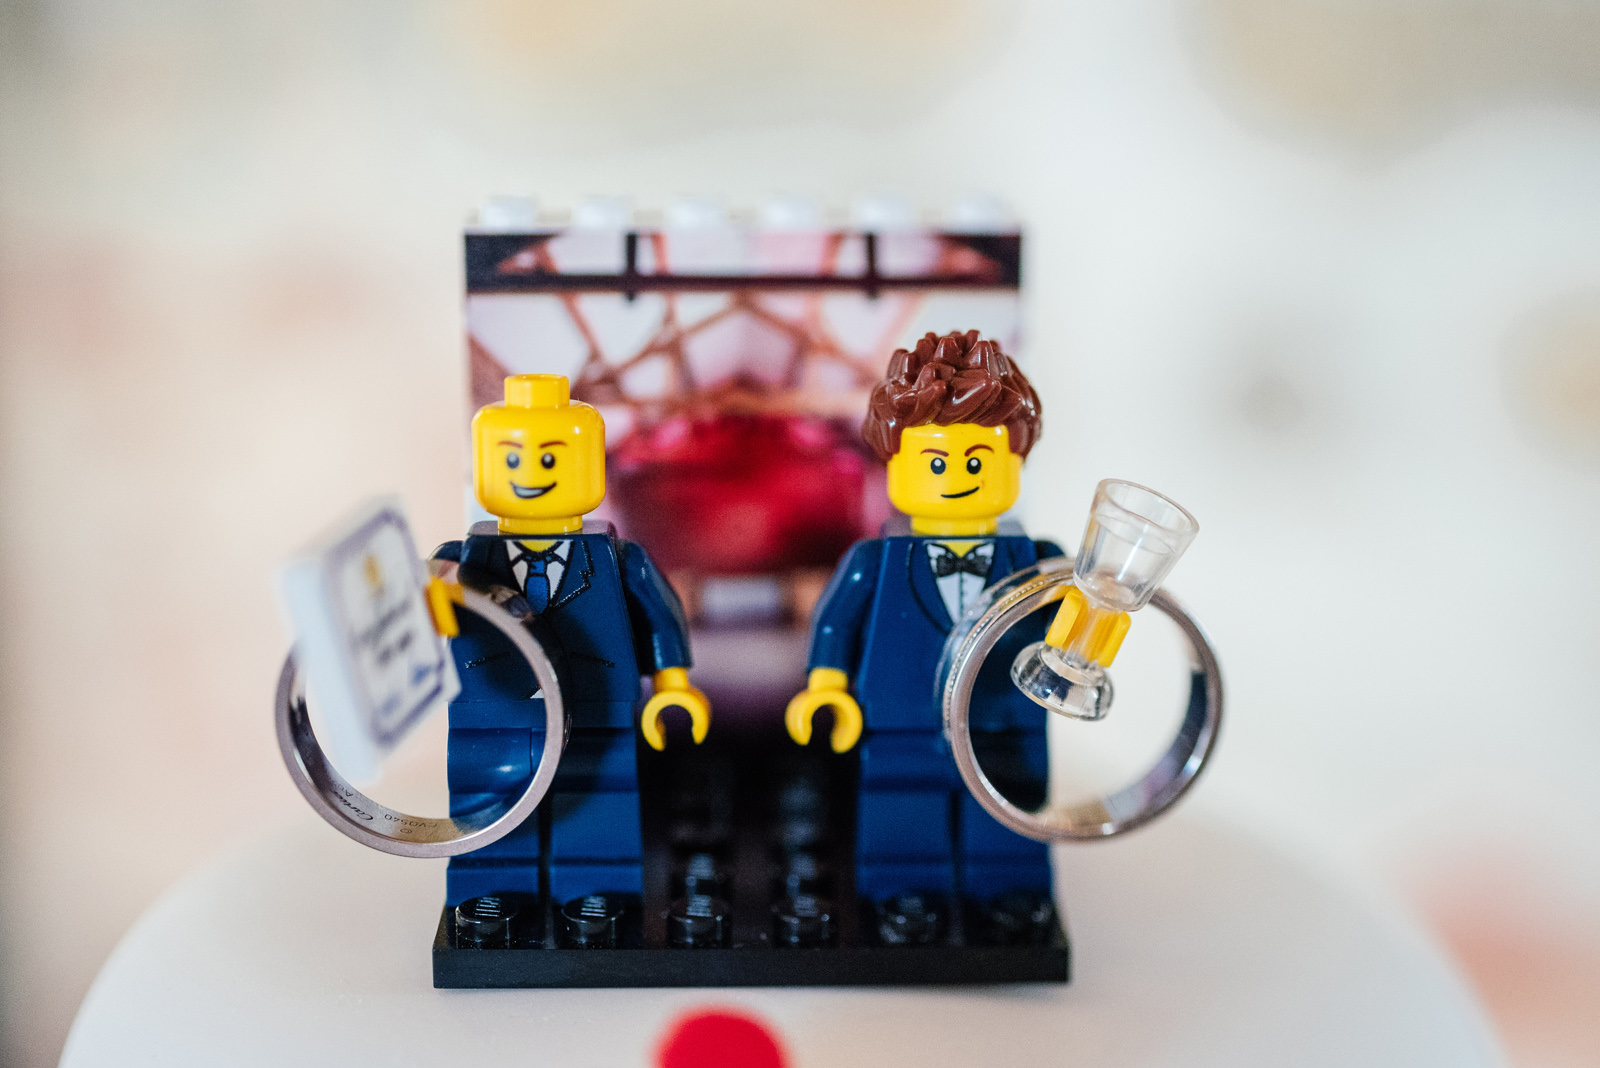 lego groomsmen with wedding rings